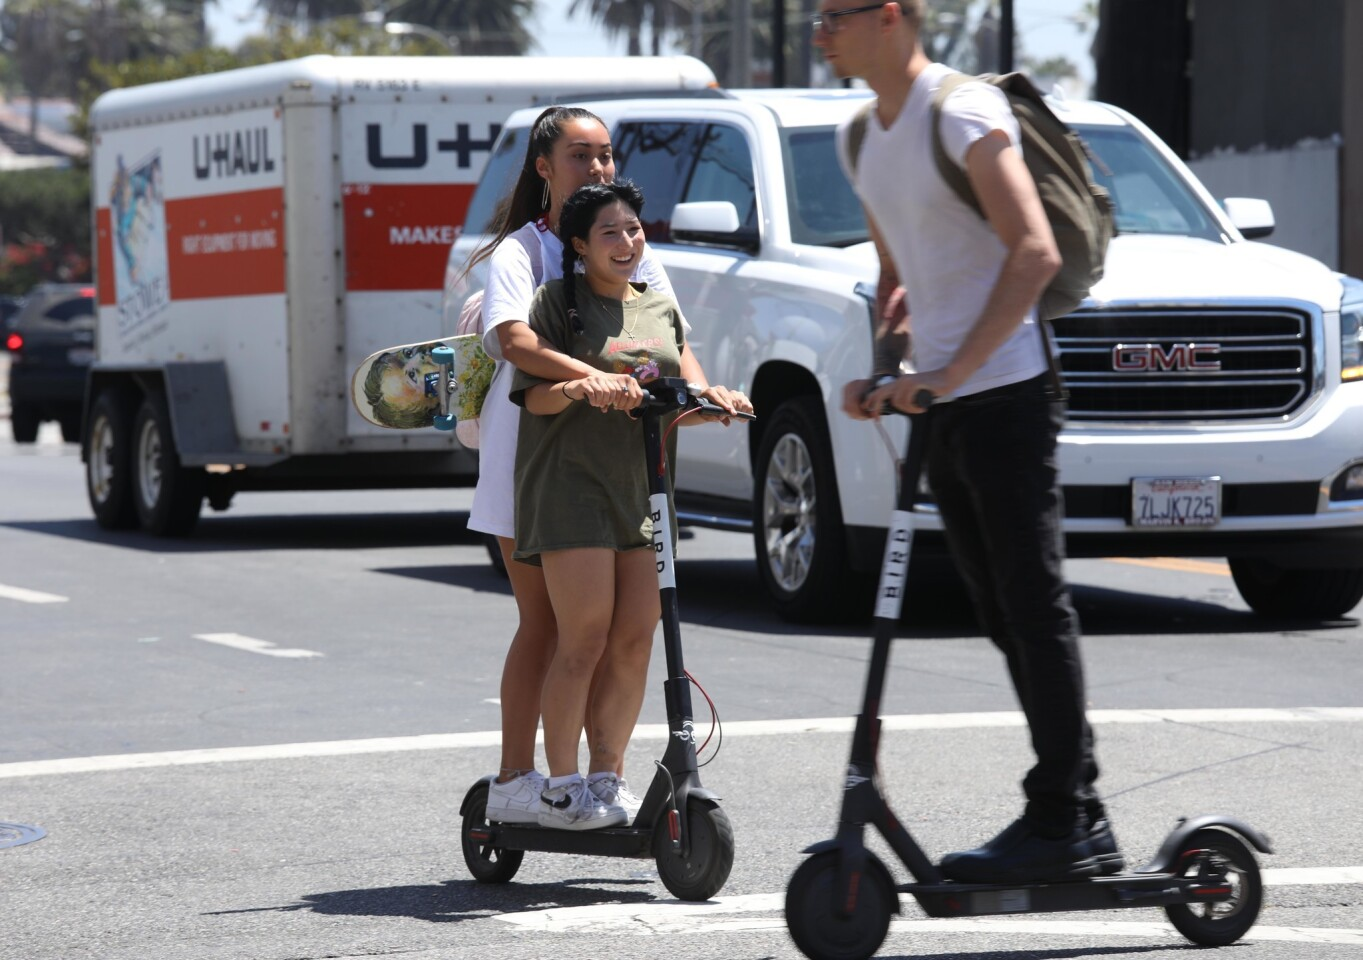 Girls ride across Pacific Avenue on a single Bird scooter as another Bird rider crosses their path in Venice on July 5, 2018. Double riders and riding without helmets are illegal when using the Bird scooter. According to the Bird rental agreement, riders must be 18 years old to operate the scooters.